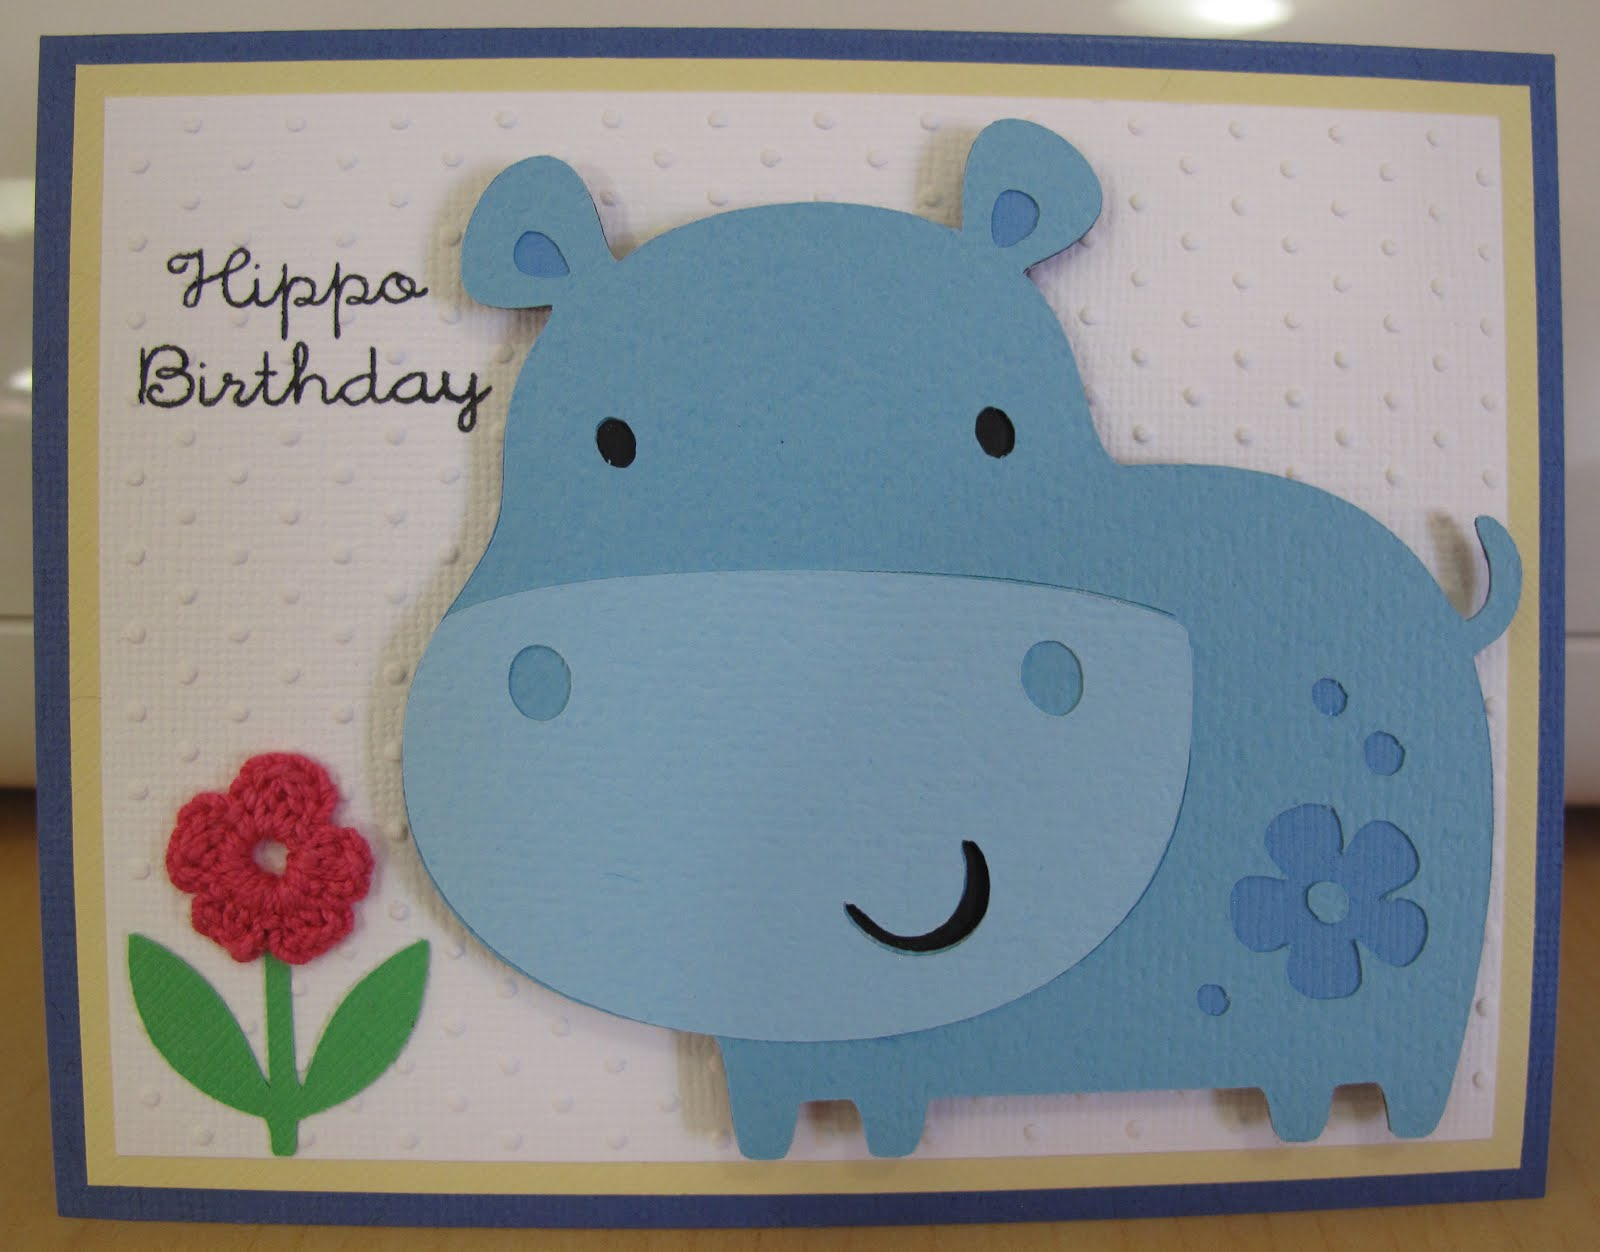 Cards by cricut hippo birthday hippo birthday bookmarktalkfo Image collections